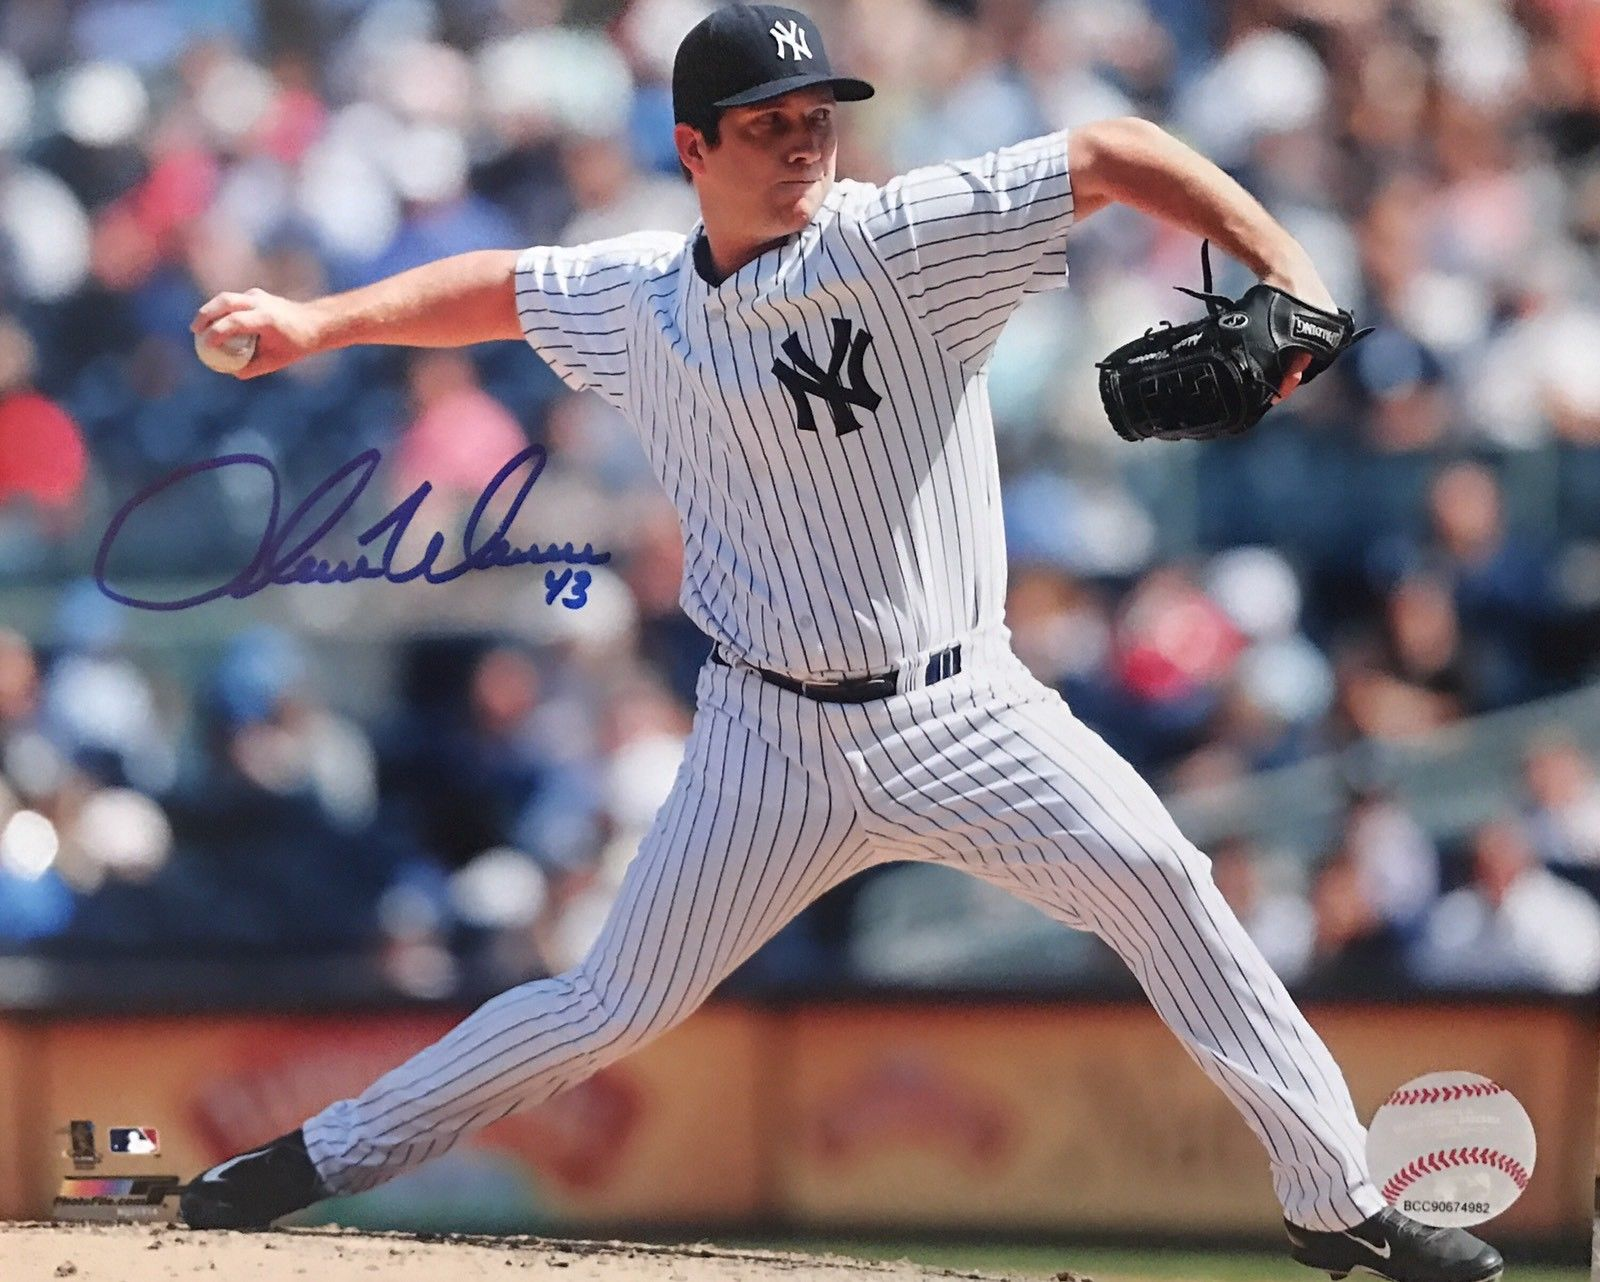 Adam Warren Authentic Signed 8x10 Photo - NEW YORK YANKEES STAR - Top Notch Signatures LLC